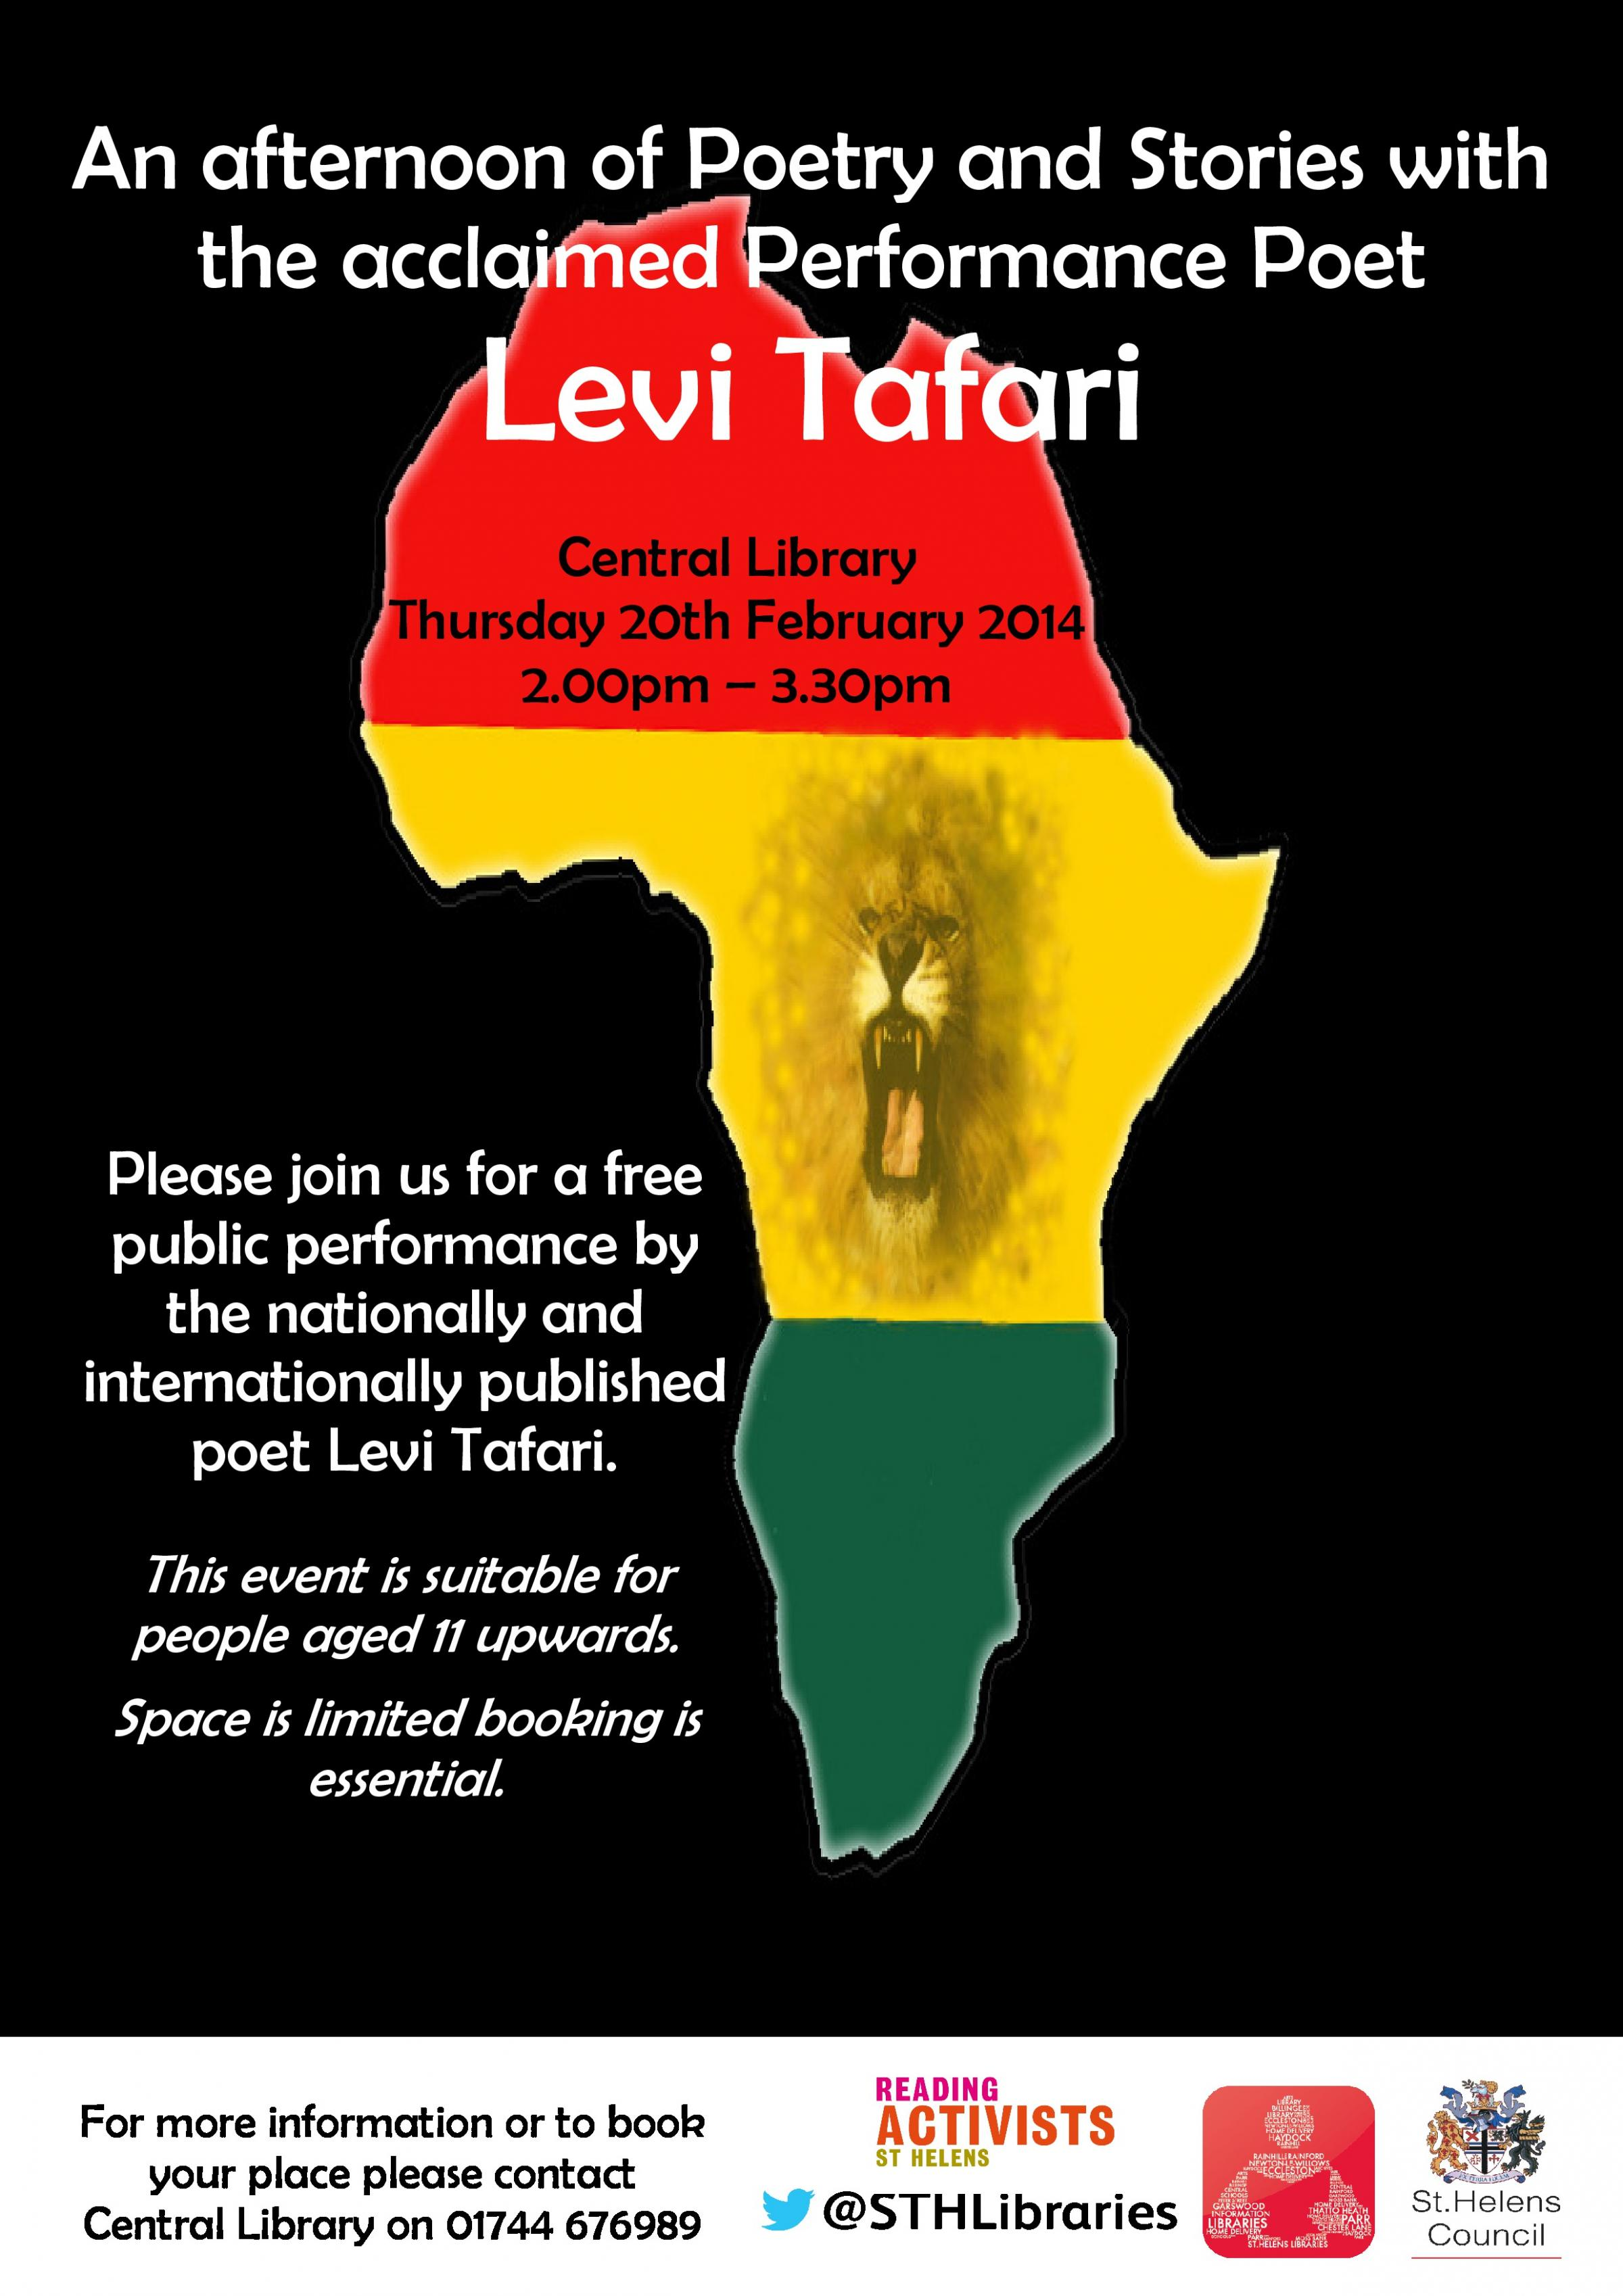 Levi Tafari to perform at Central Library